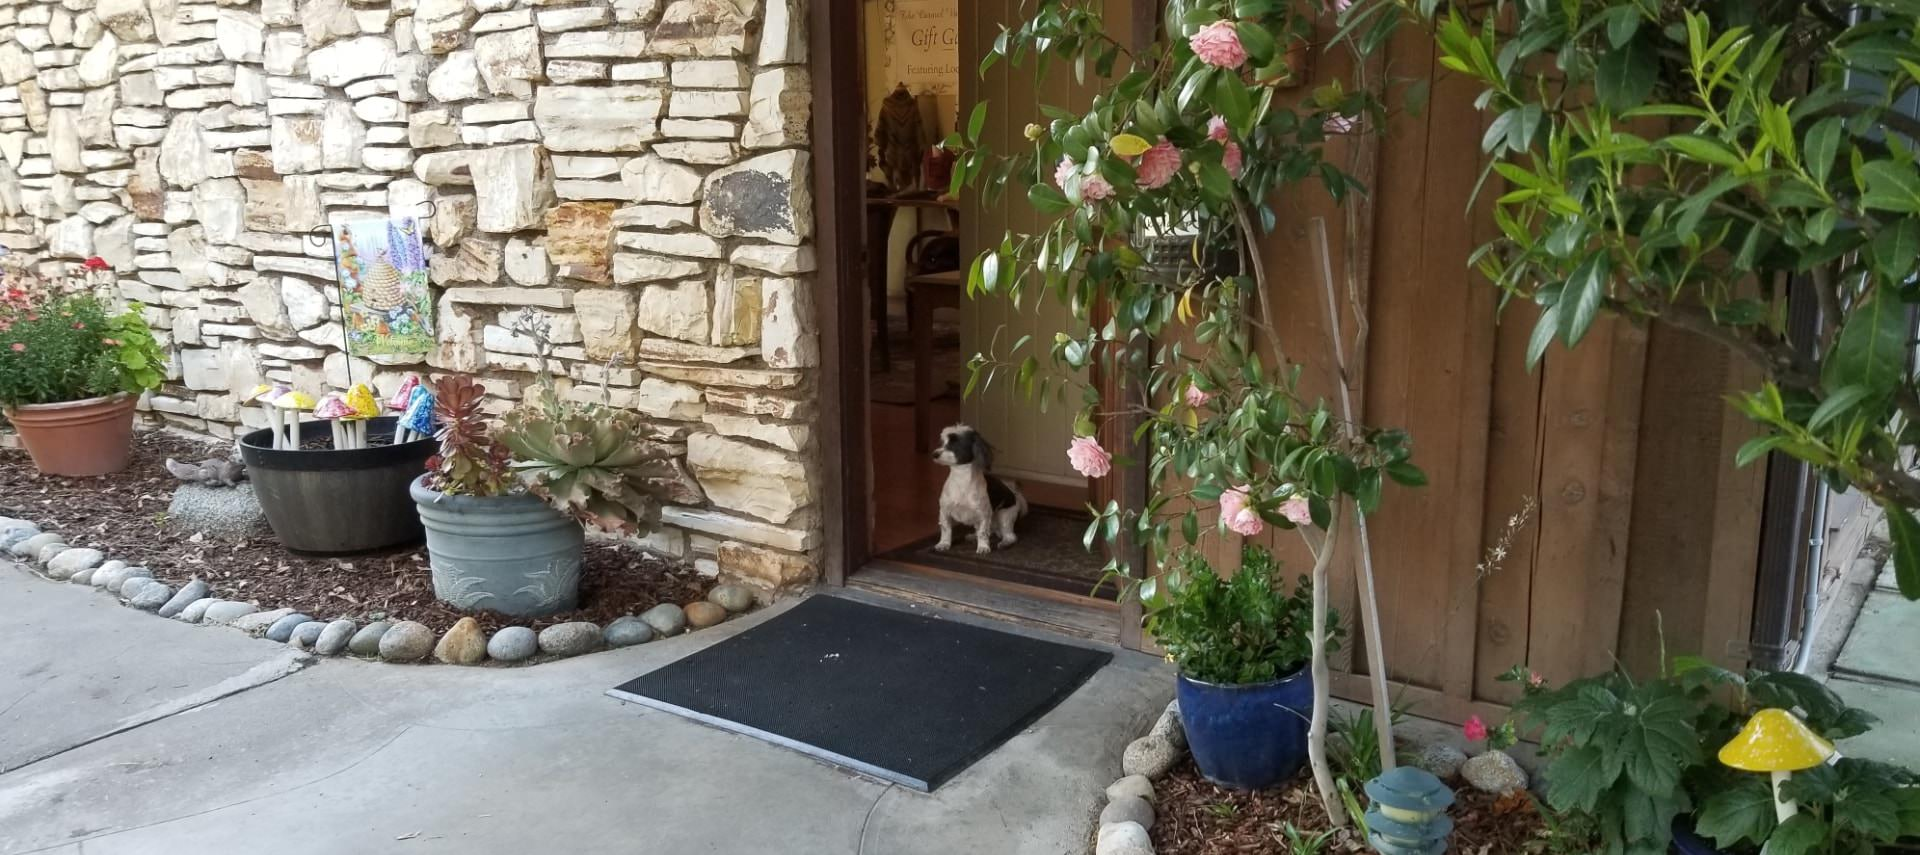 Exterior view of property with layered stone walls, concrete sidewalk edged with rocks and large flower pots, and small white and black dog at the door